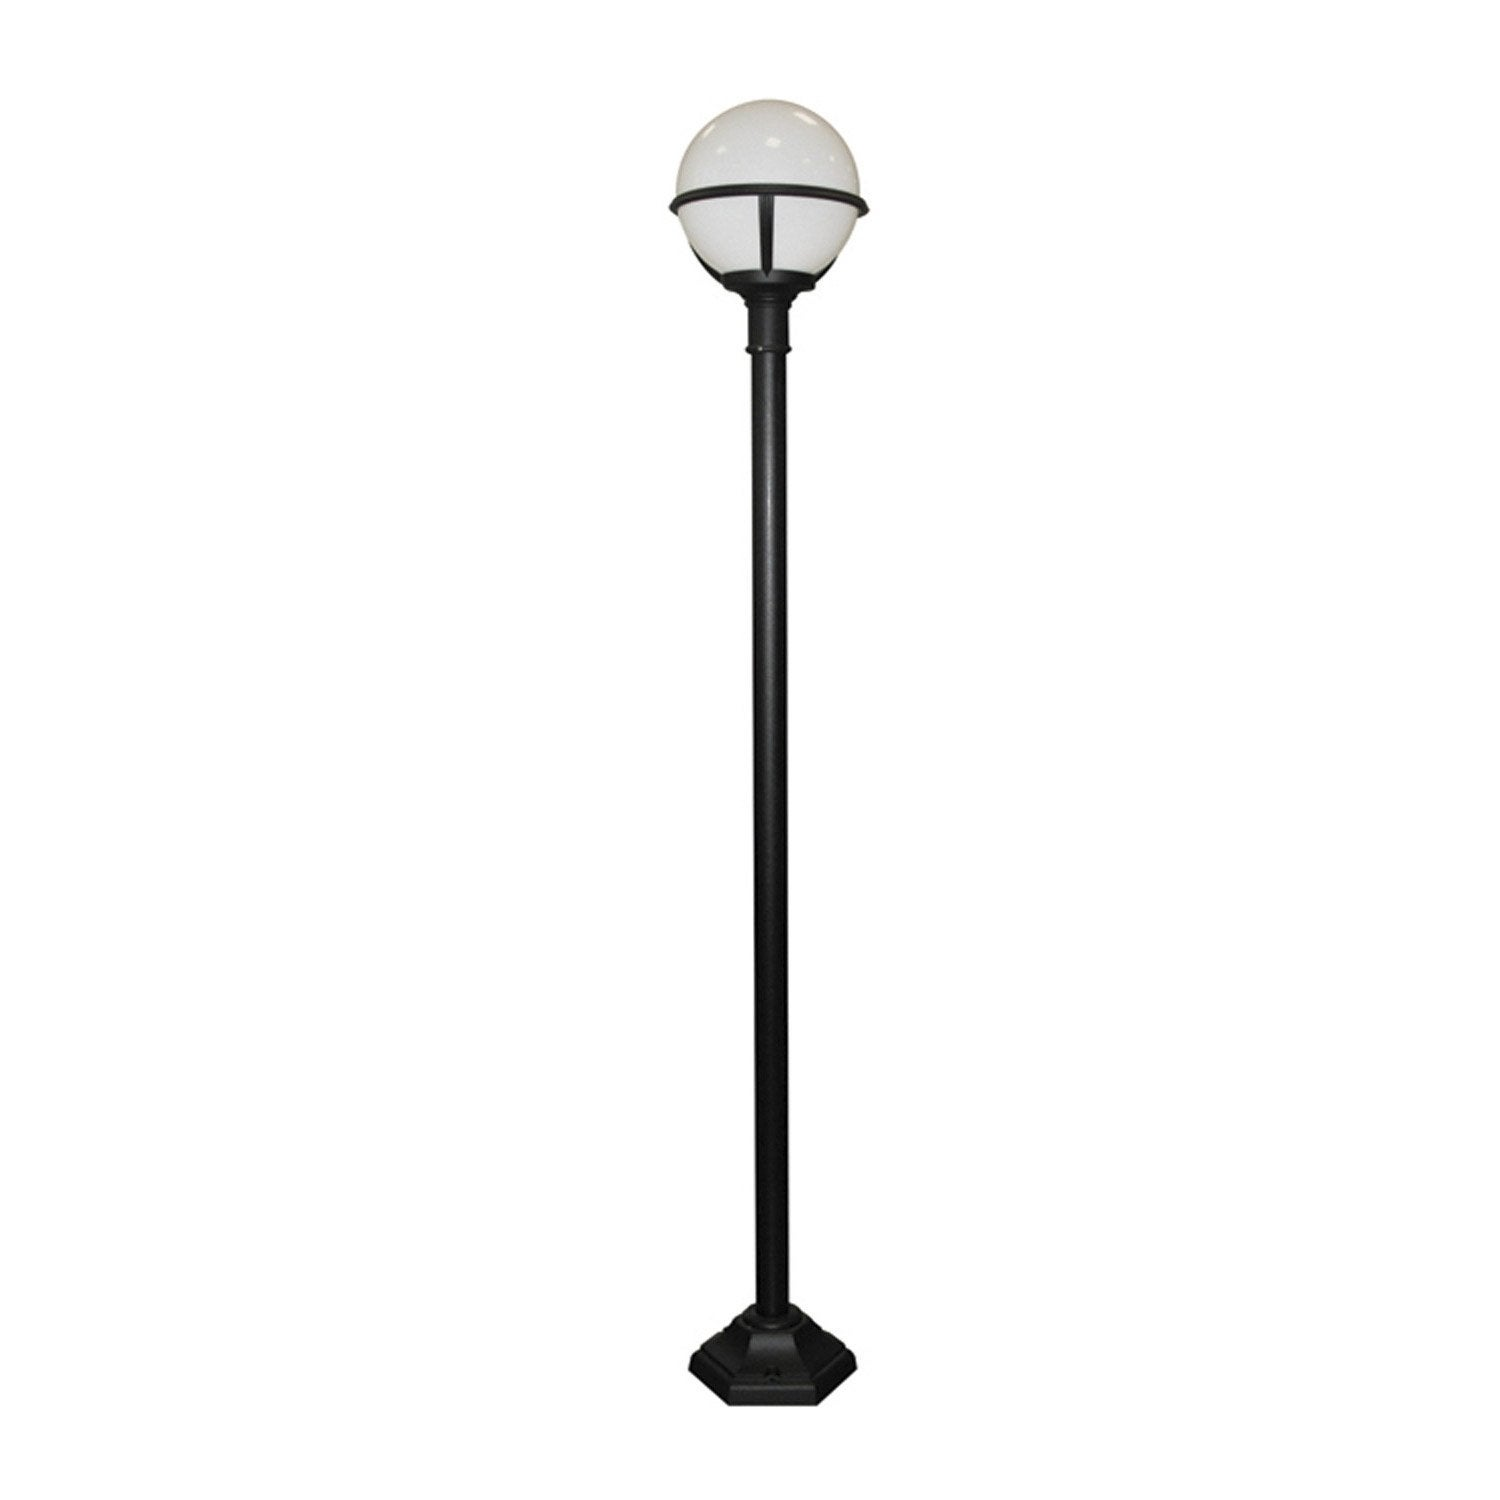 lampadaire ext rieur glenbeigh e27 100 w noir elstead leroy merlin. Black Bedroom Furniture Sets. Home Design Ideas